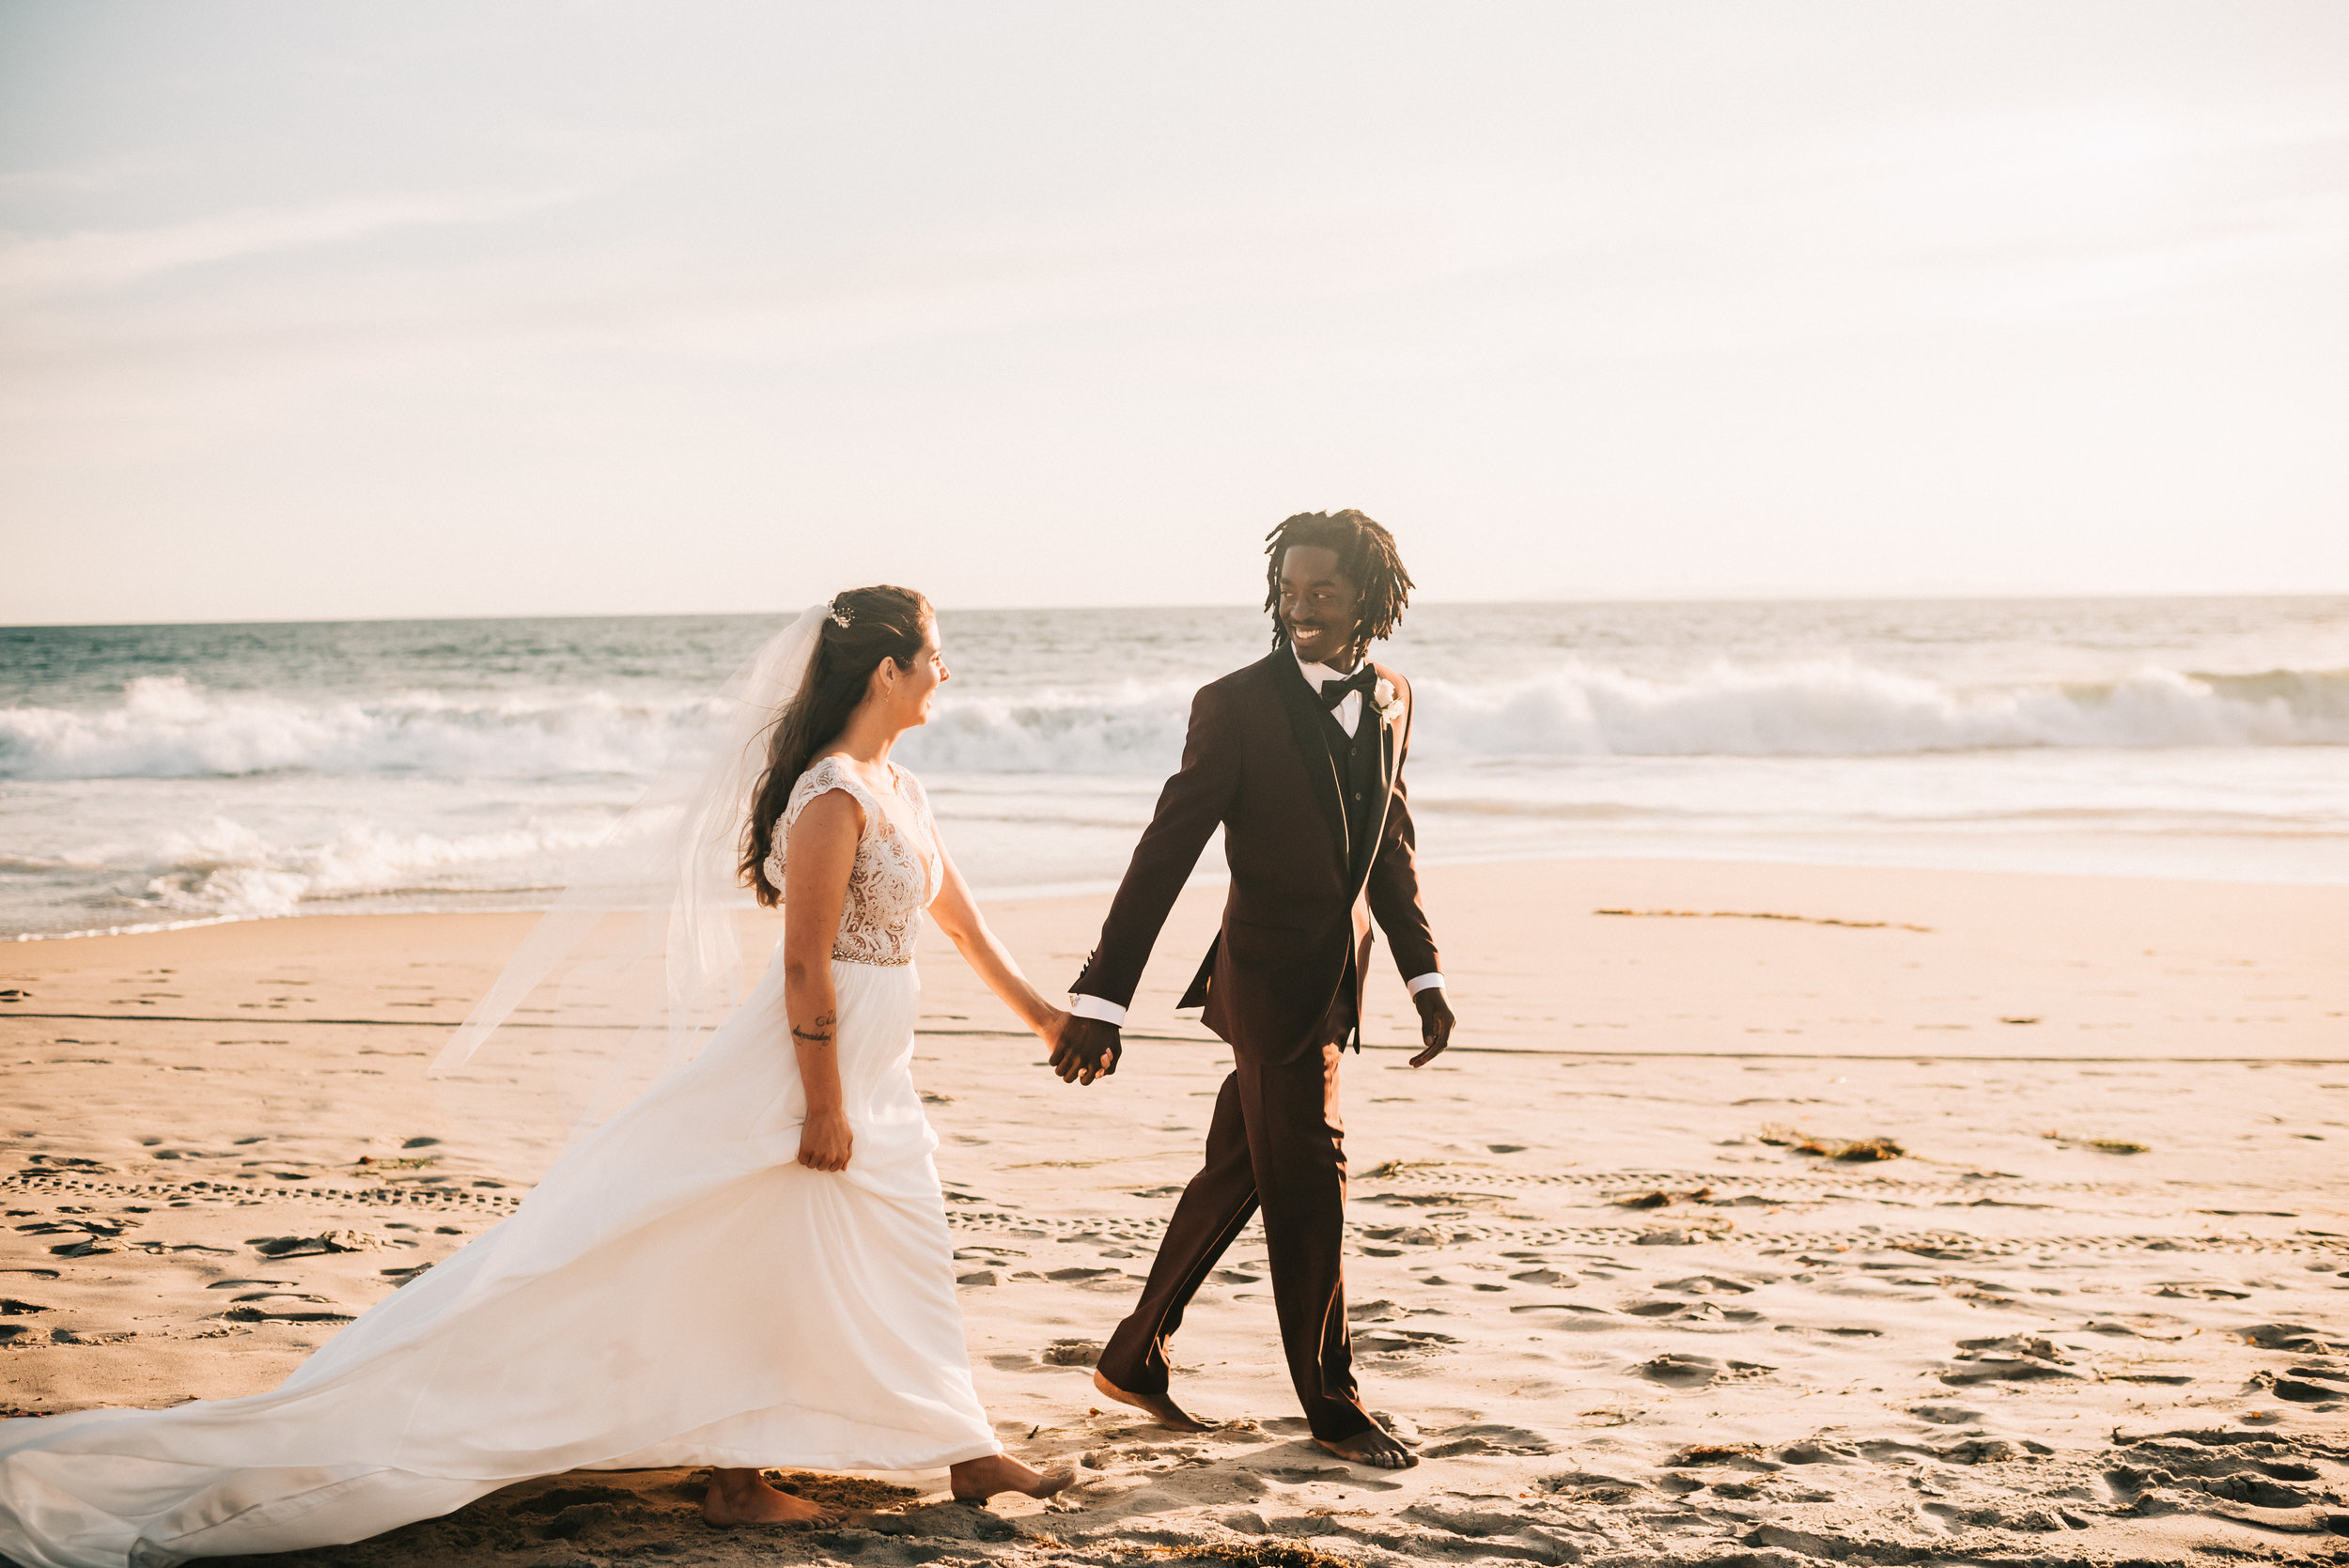 southern california laguna beach salt creek beach los angeles socal boho bay area akland san francisco engagement wedding nontraditional fun creative eclectic photographer magic-901.jpg